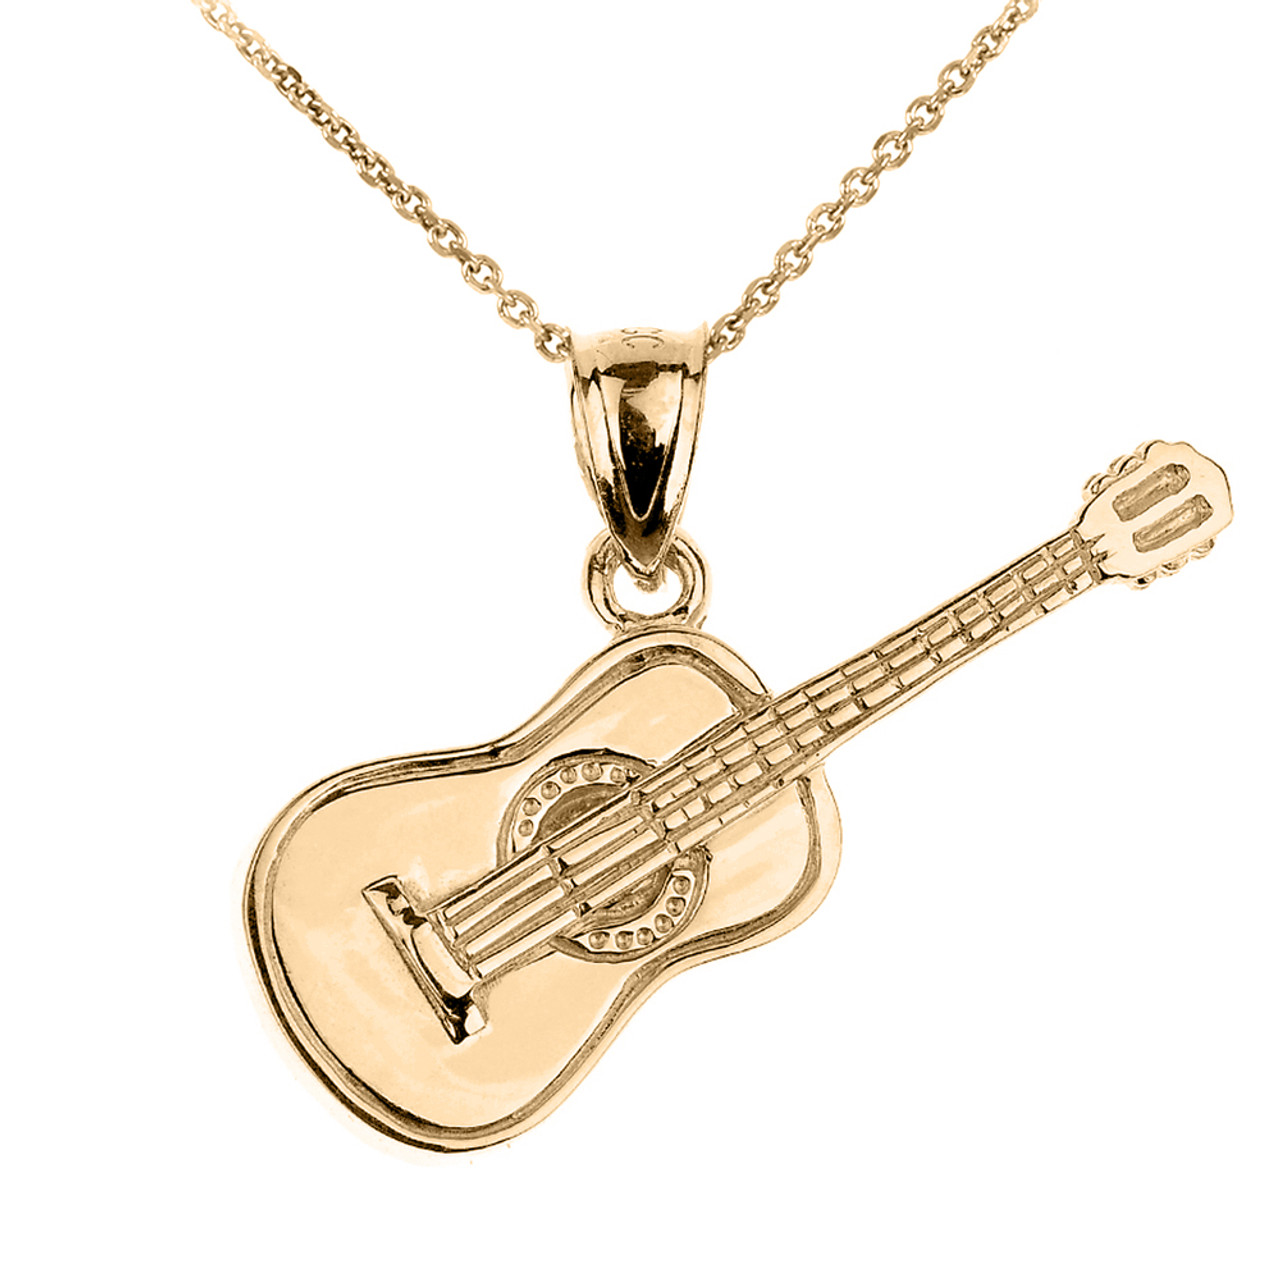 pp necklaces steel fashion stainless pendant pendants classical guitar necklace